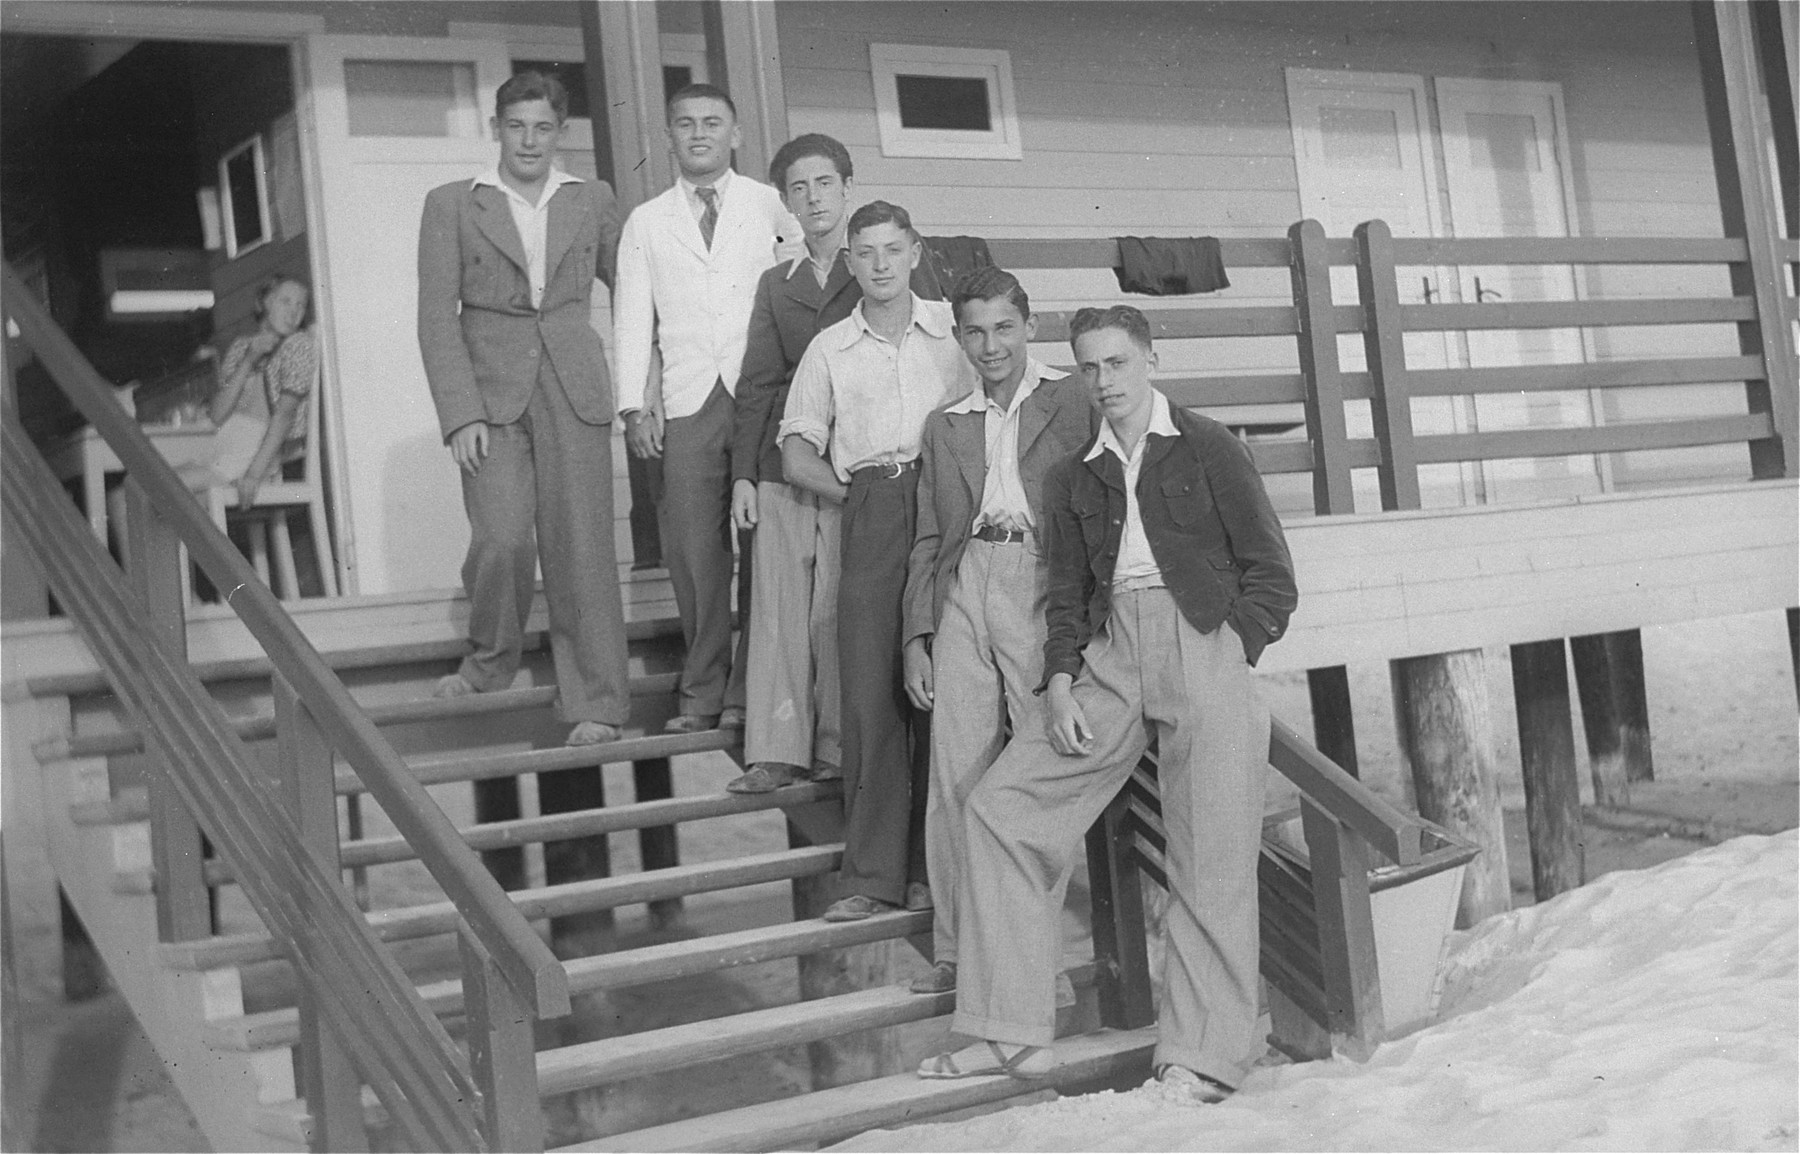 A group of Jewish youth pose on the stairs of a boathouse.